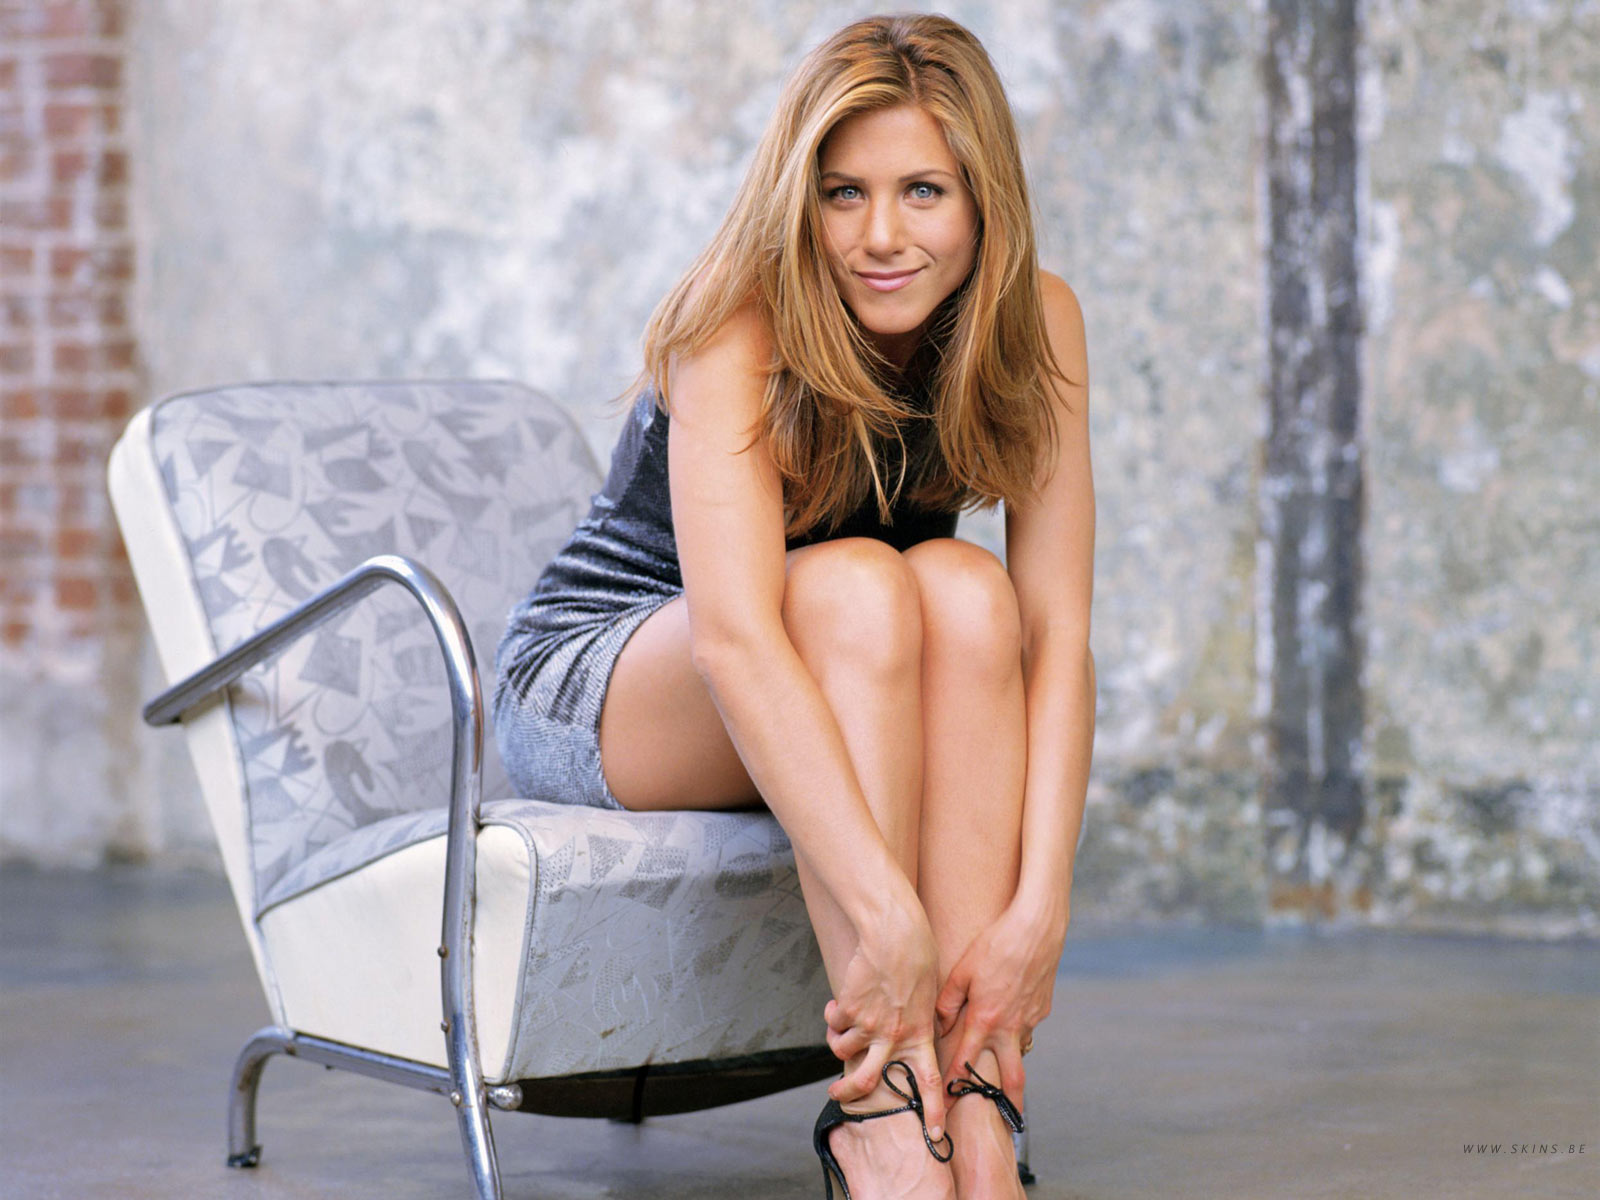 http://1.bp.blogspot.com/_GCAuqodmOE4/TRvTWgve_XI/AAAAAAAAGQw/wtiw6VYIsMM/s1600/Jennifer+Aniston+Famous+Modeling+Pics+On+Chair+%25282%2529.jpg